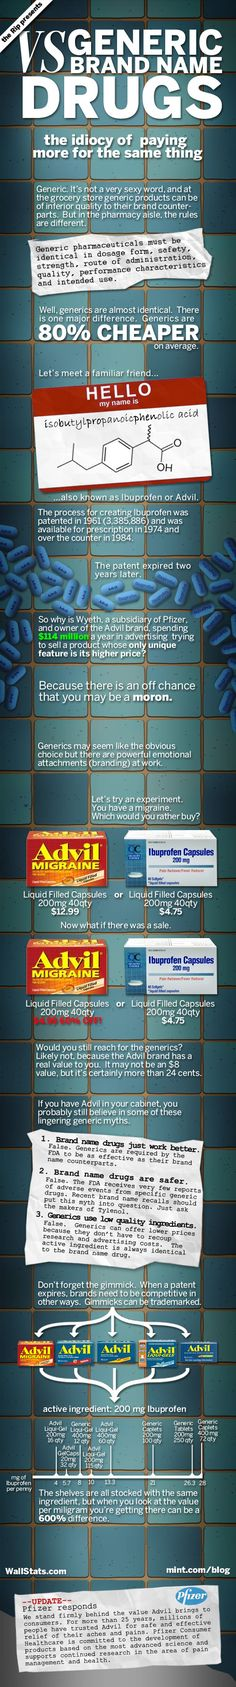 Health - Generic vs Brand Name drugs. Buy the generic! It will save you so much $$ and is the exact same active ingredient. #infographic @Sulisa Lo